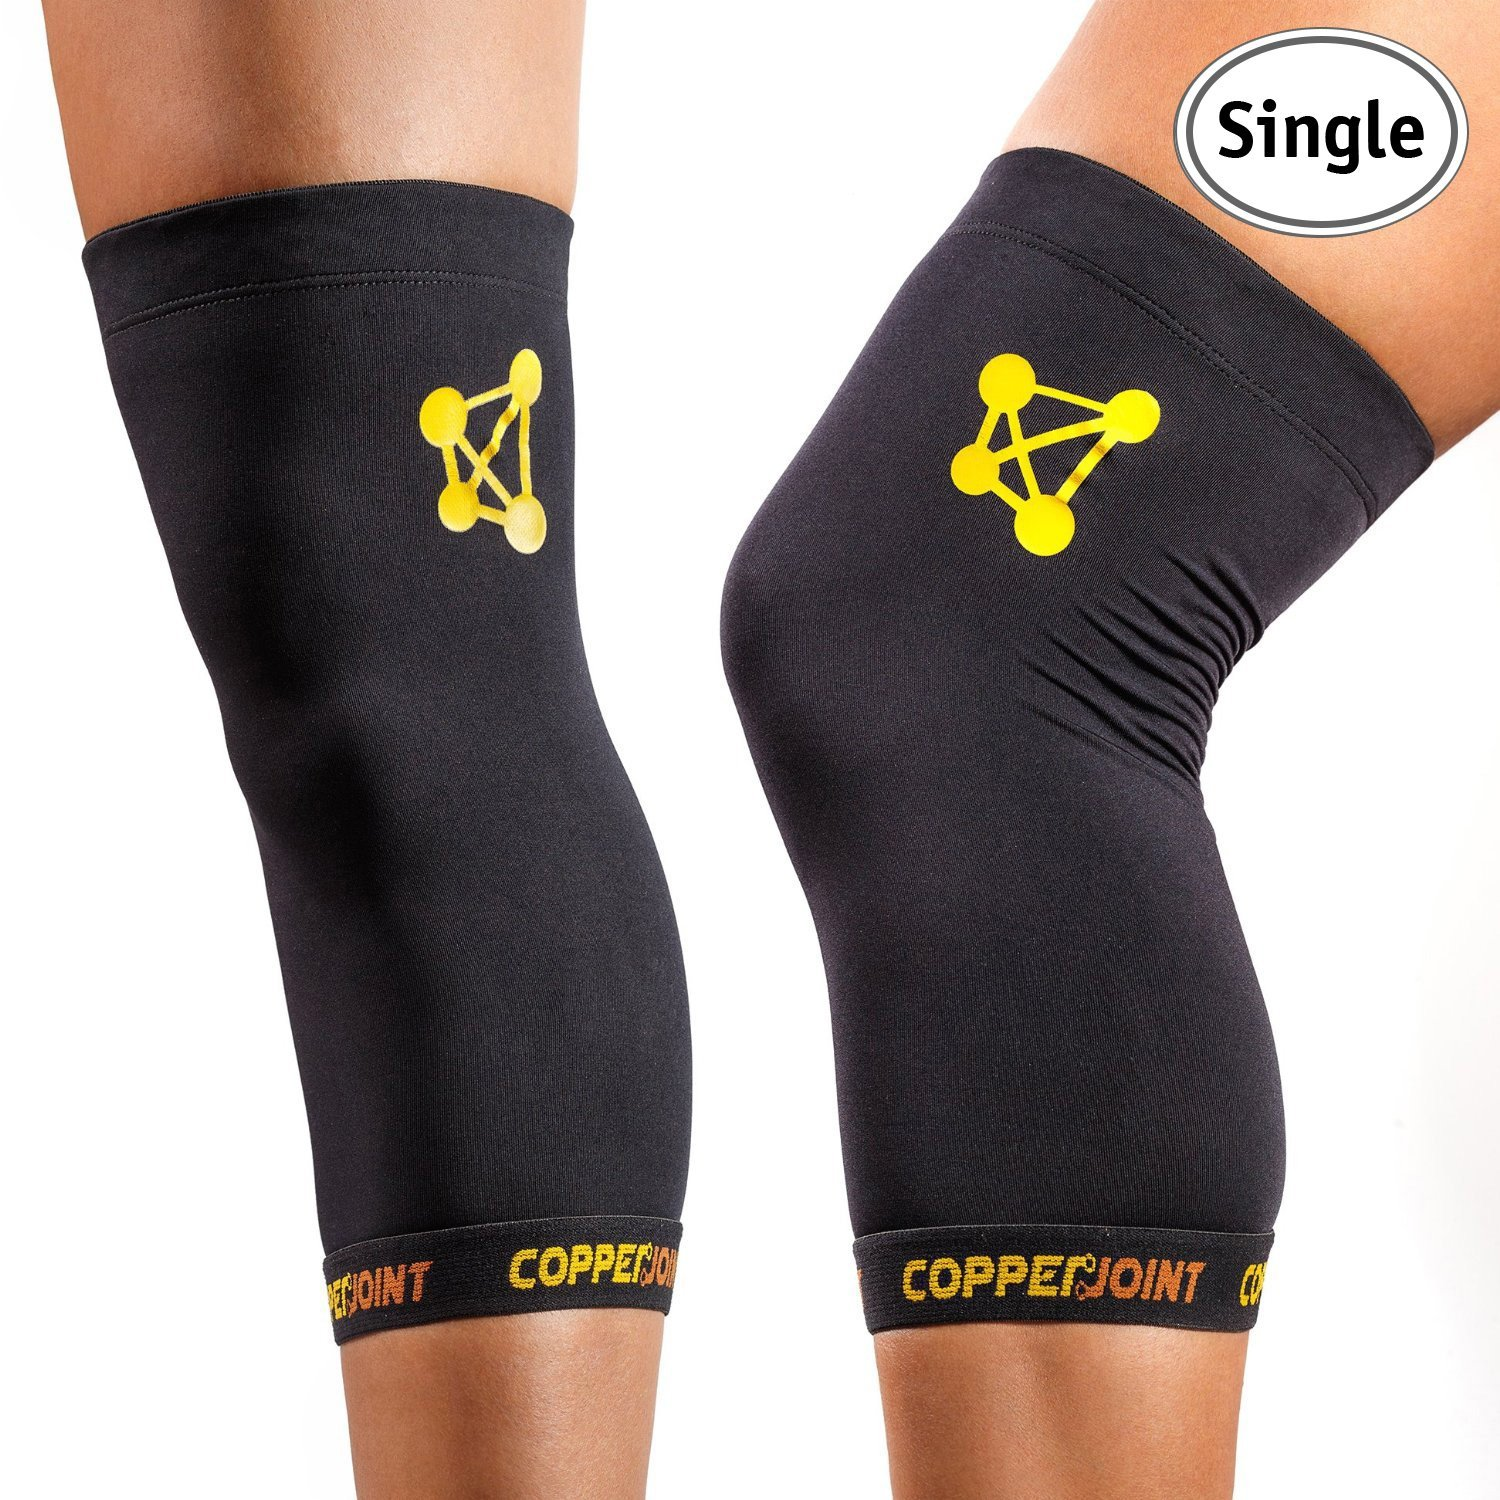 112f03d897 copperjoint knee sleeve #1 copper infused compression support | recovery  brace - Walmart.com